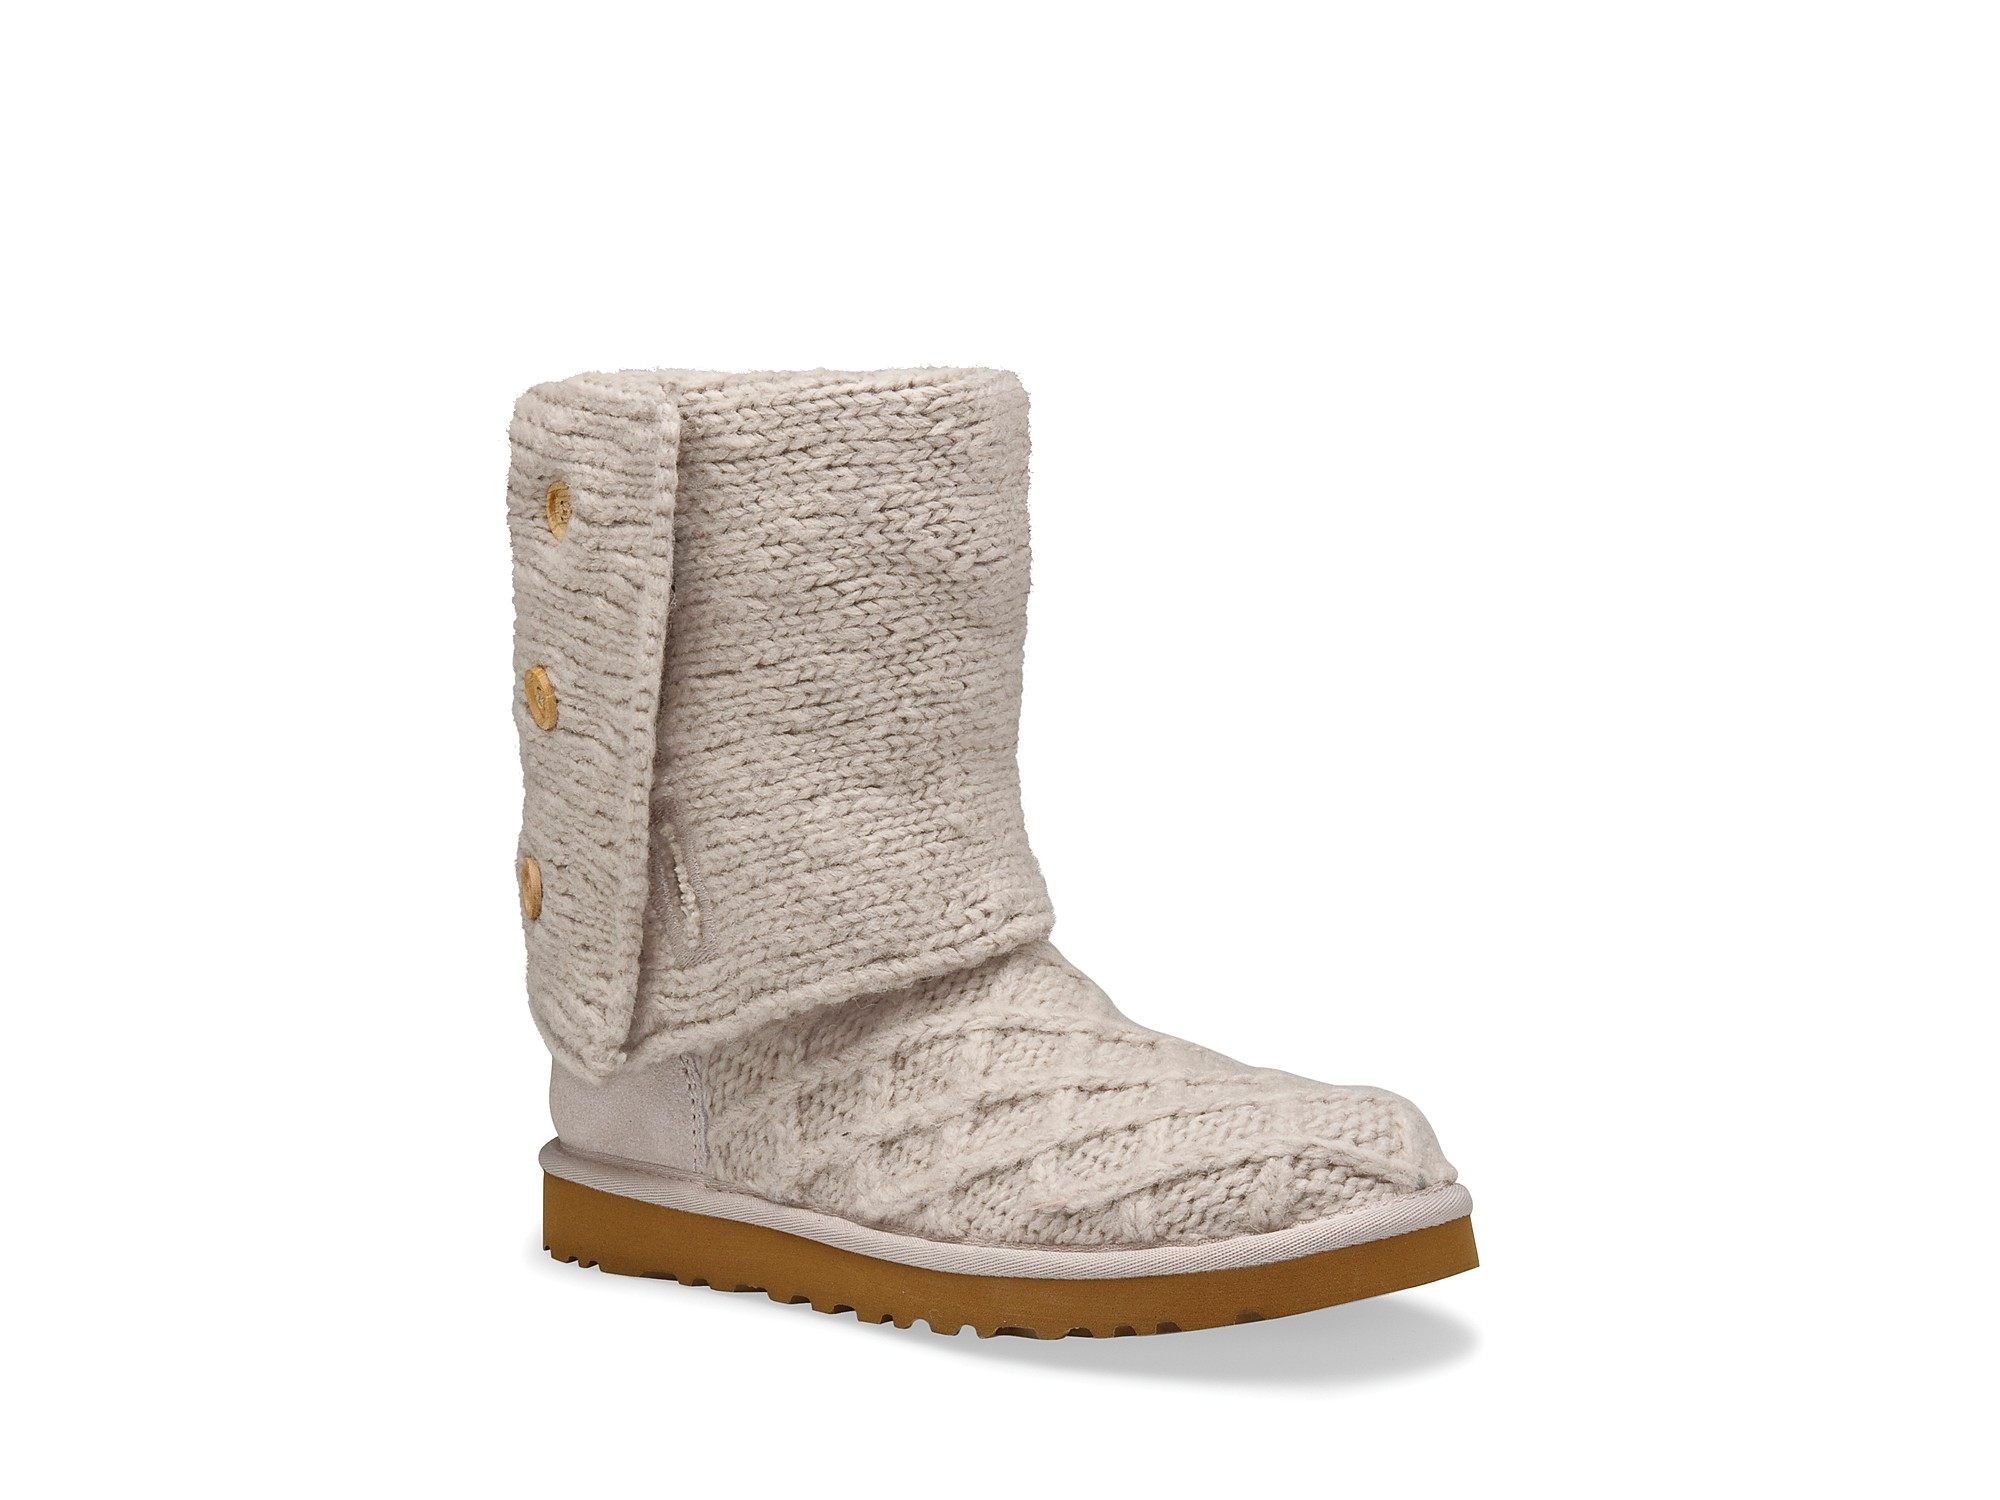 Lyst Ugg Lattice Cardy Boots In Natural